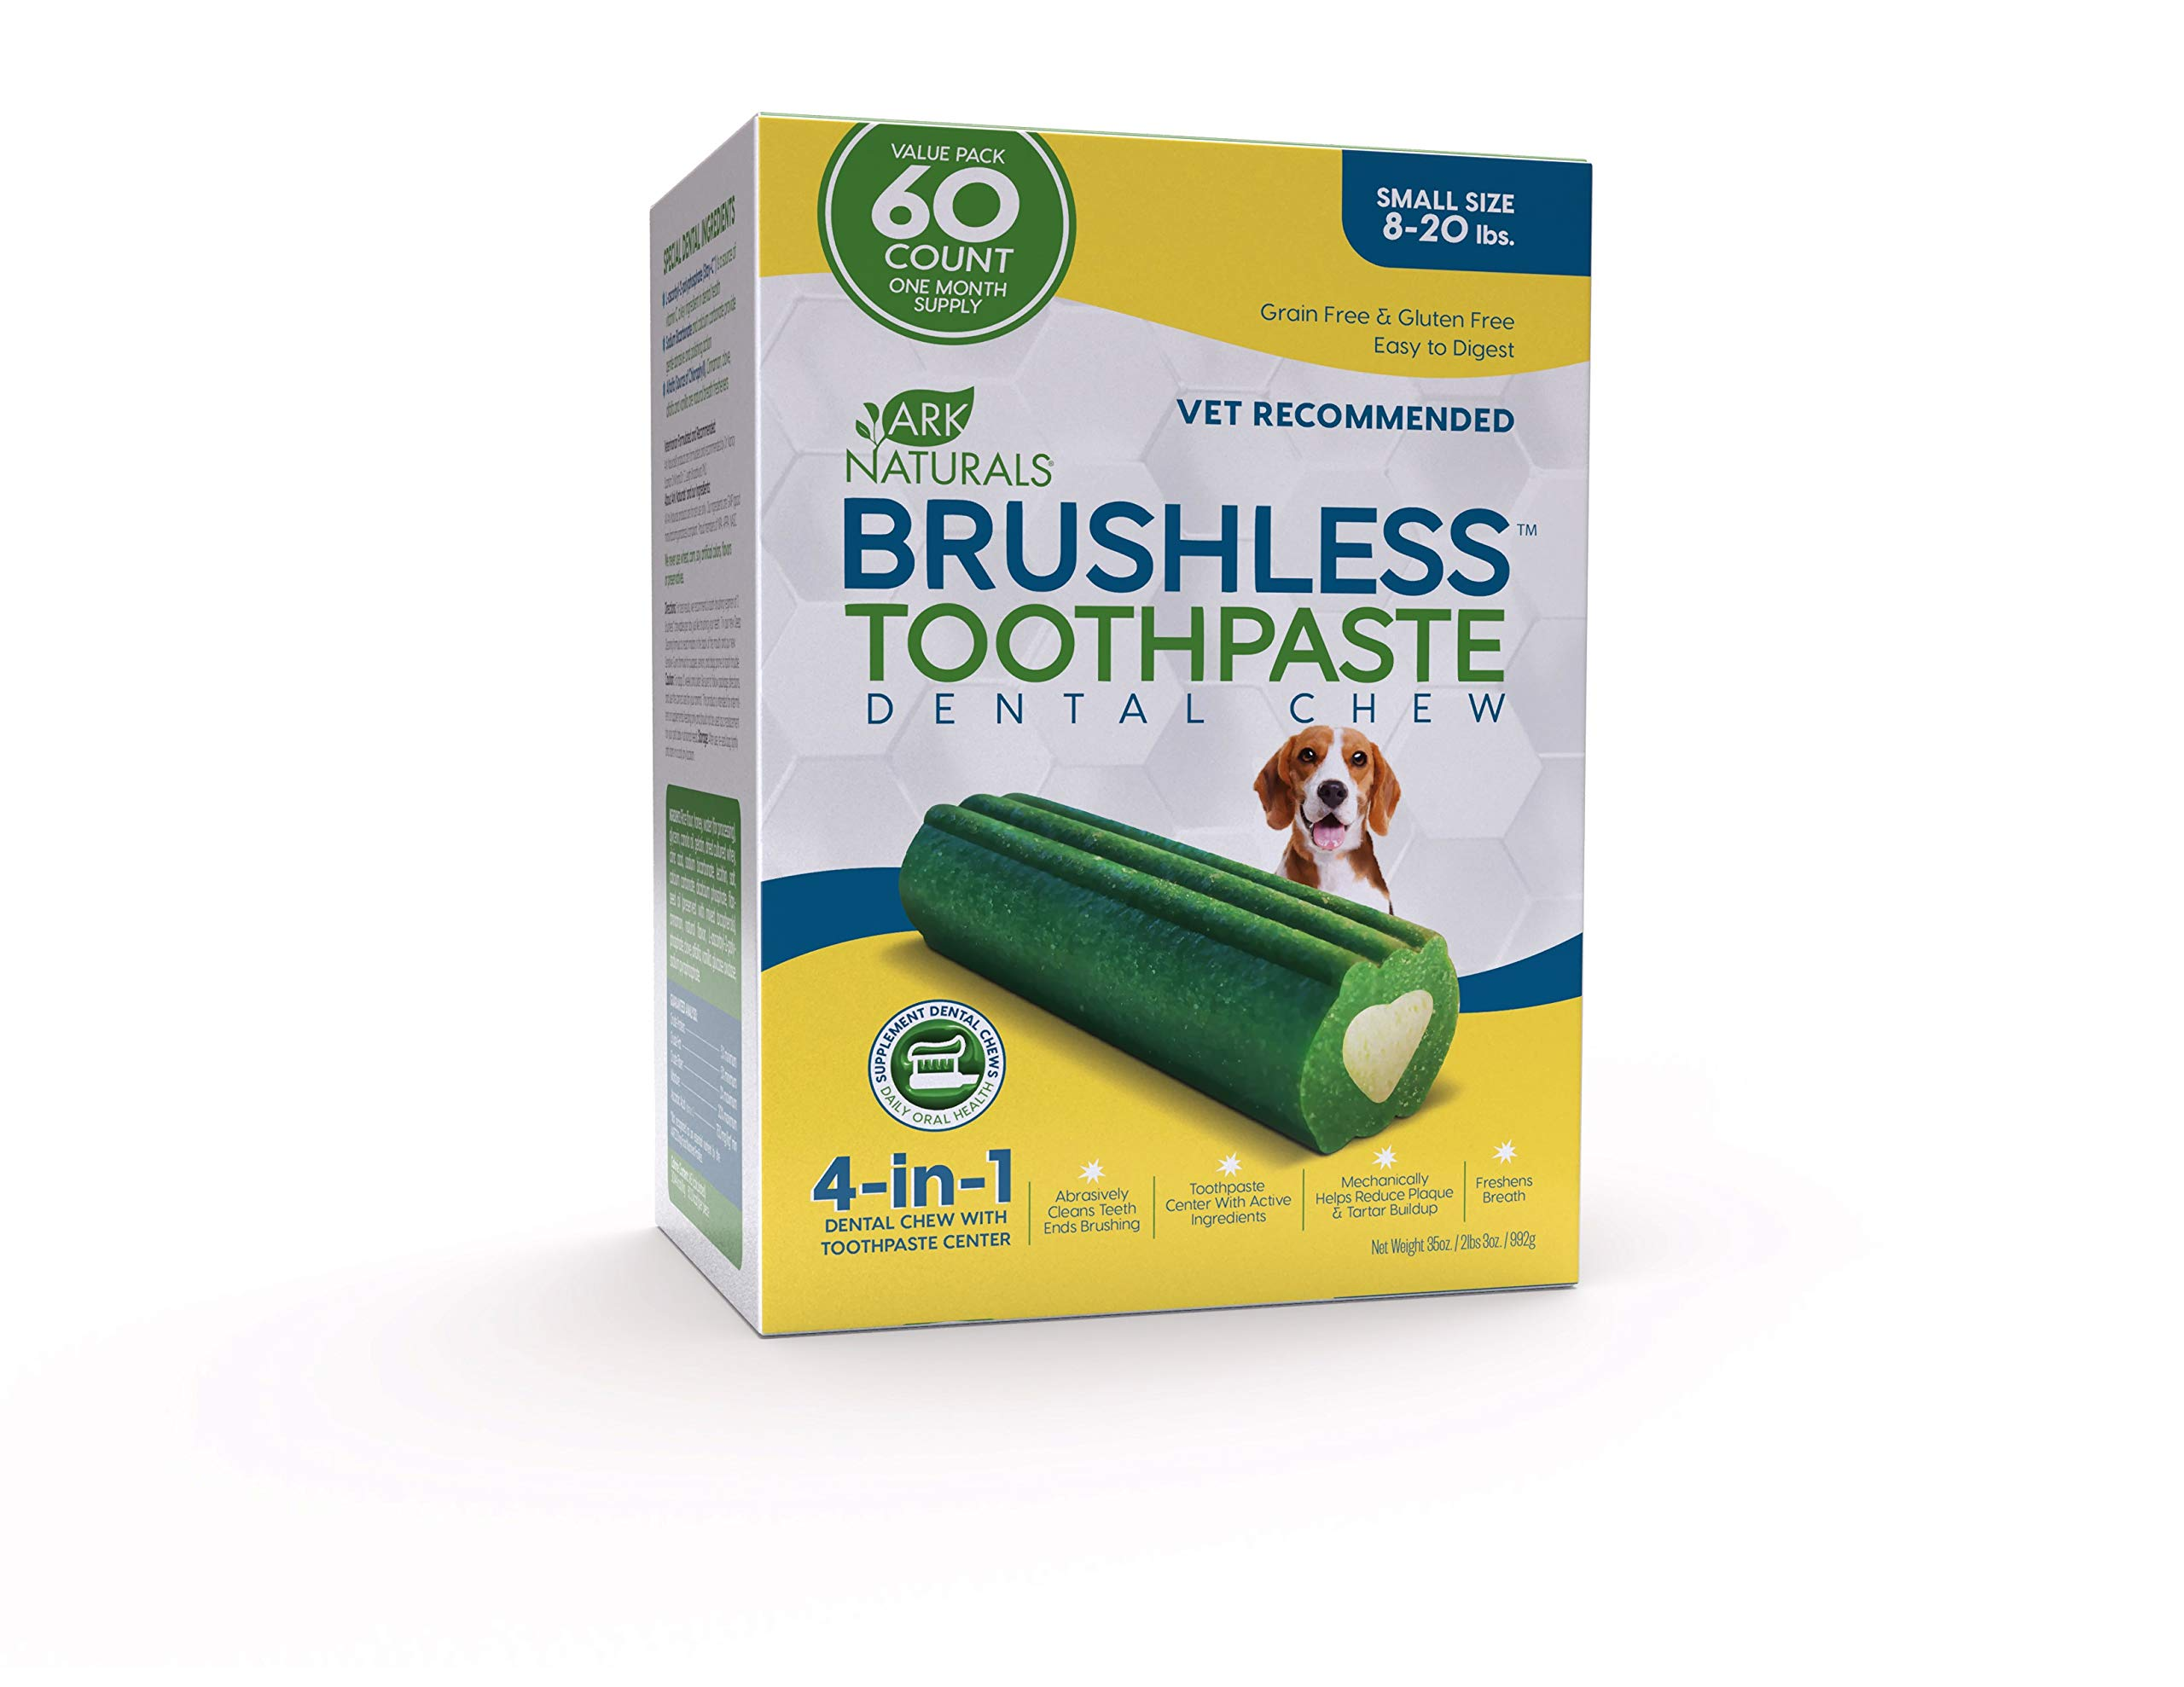 ARK NATURALS Brushless Toothpaste, Vet Recommended Natural Dental Chews for Dogs, Plaque, Tartar and Bacteria Control by ARK NATURALS